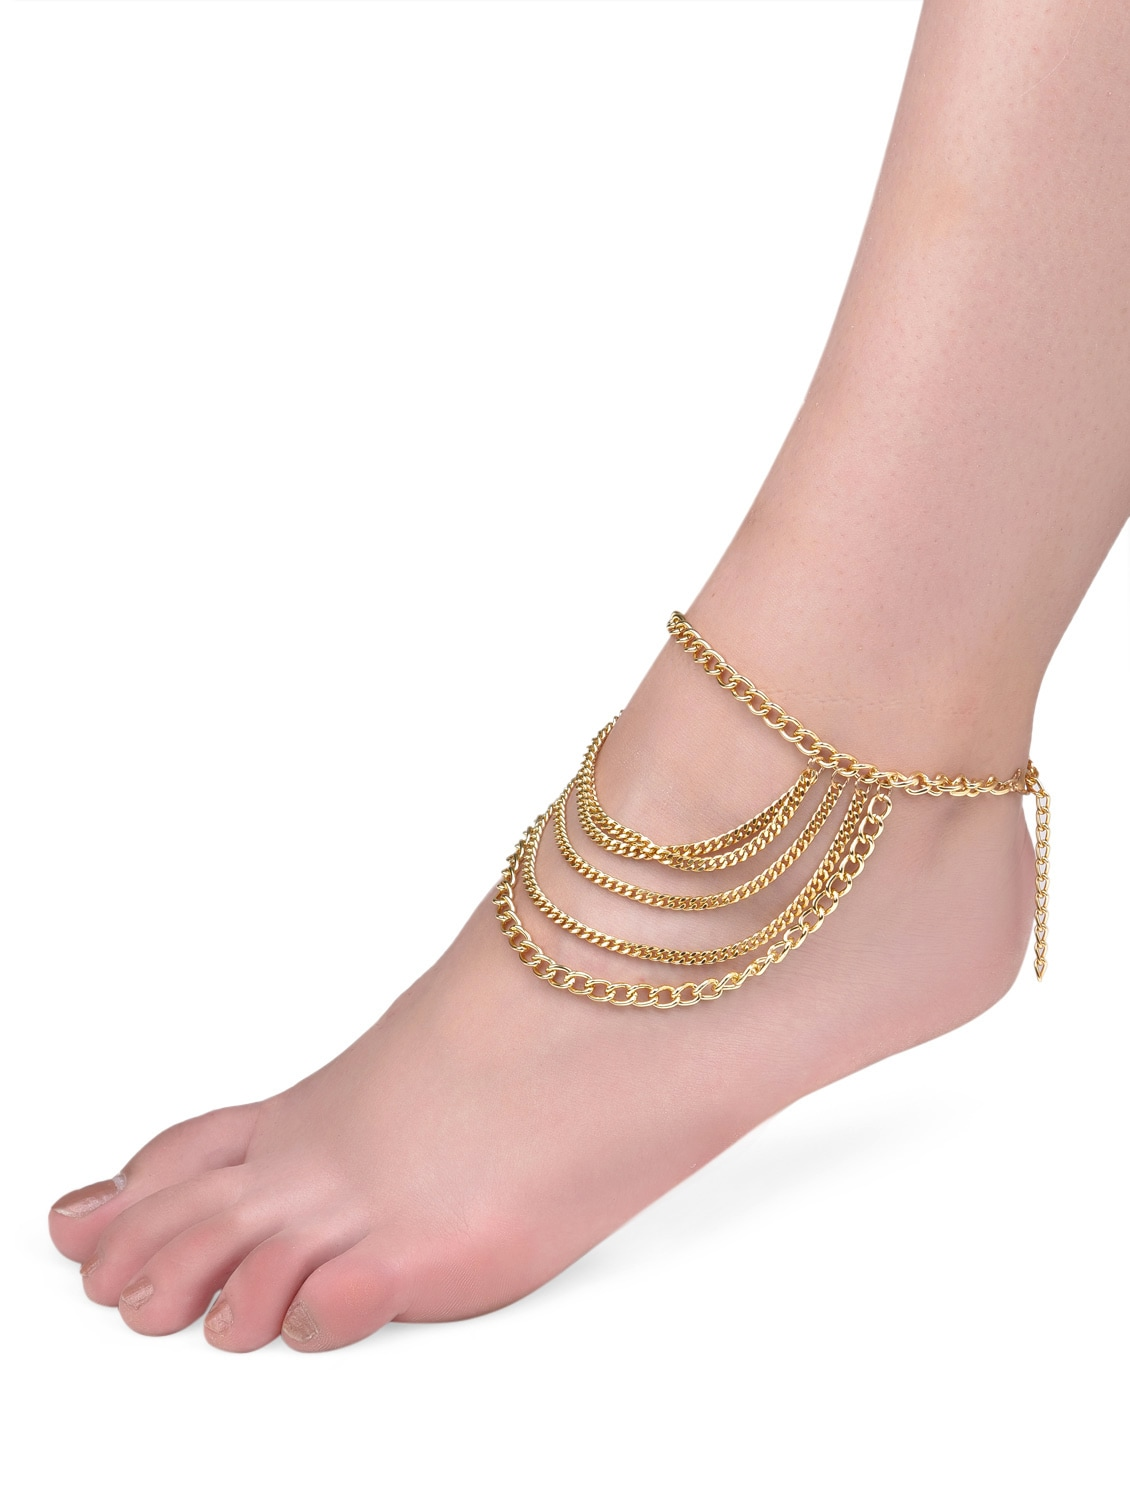 buy categories matki hanging anklets anklet attractive online